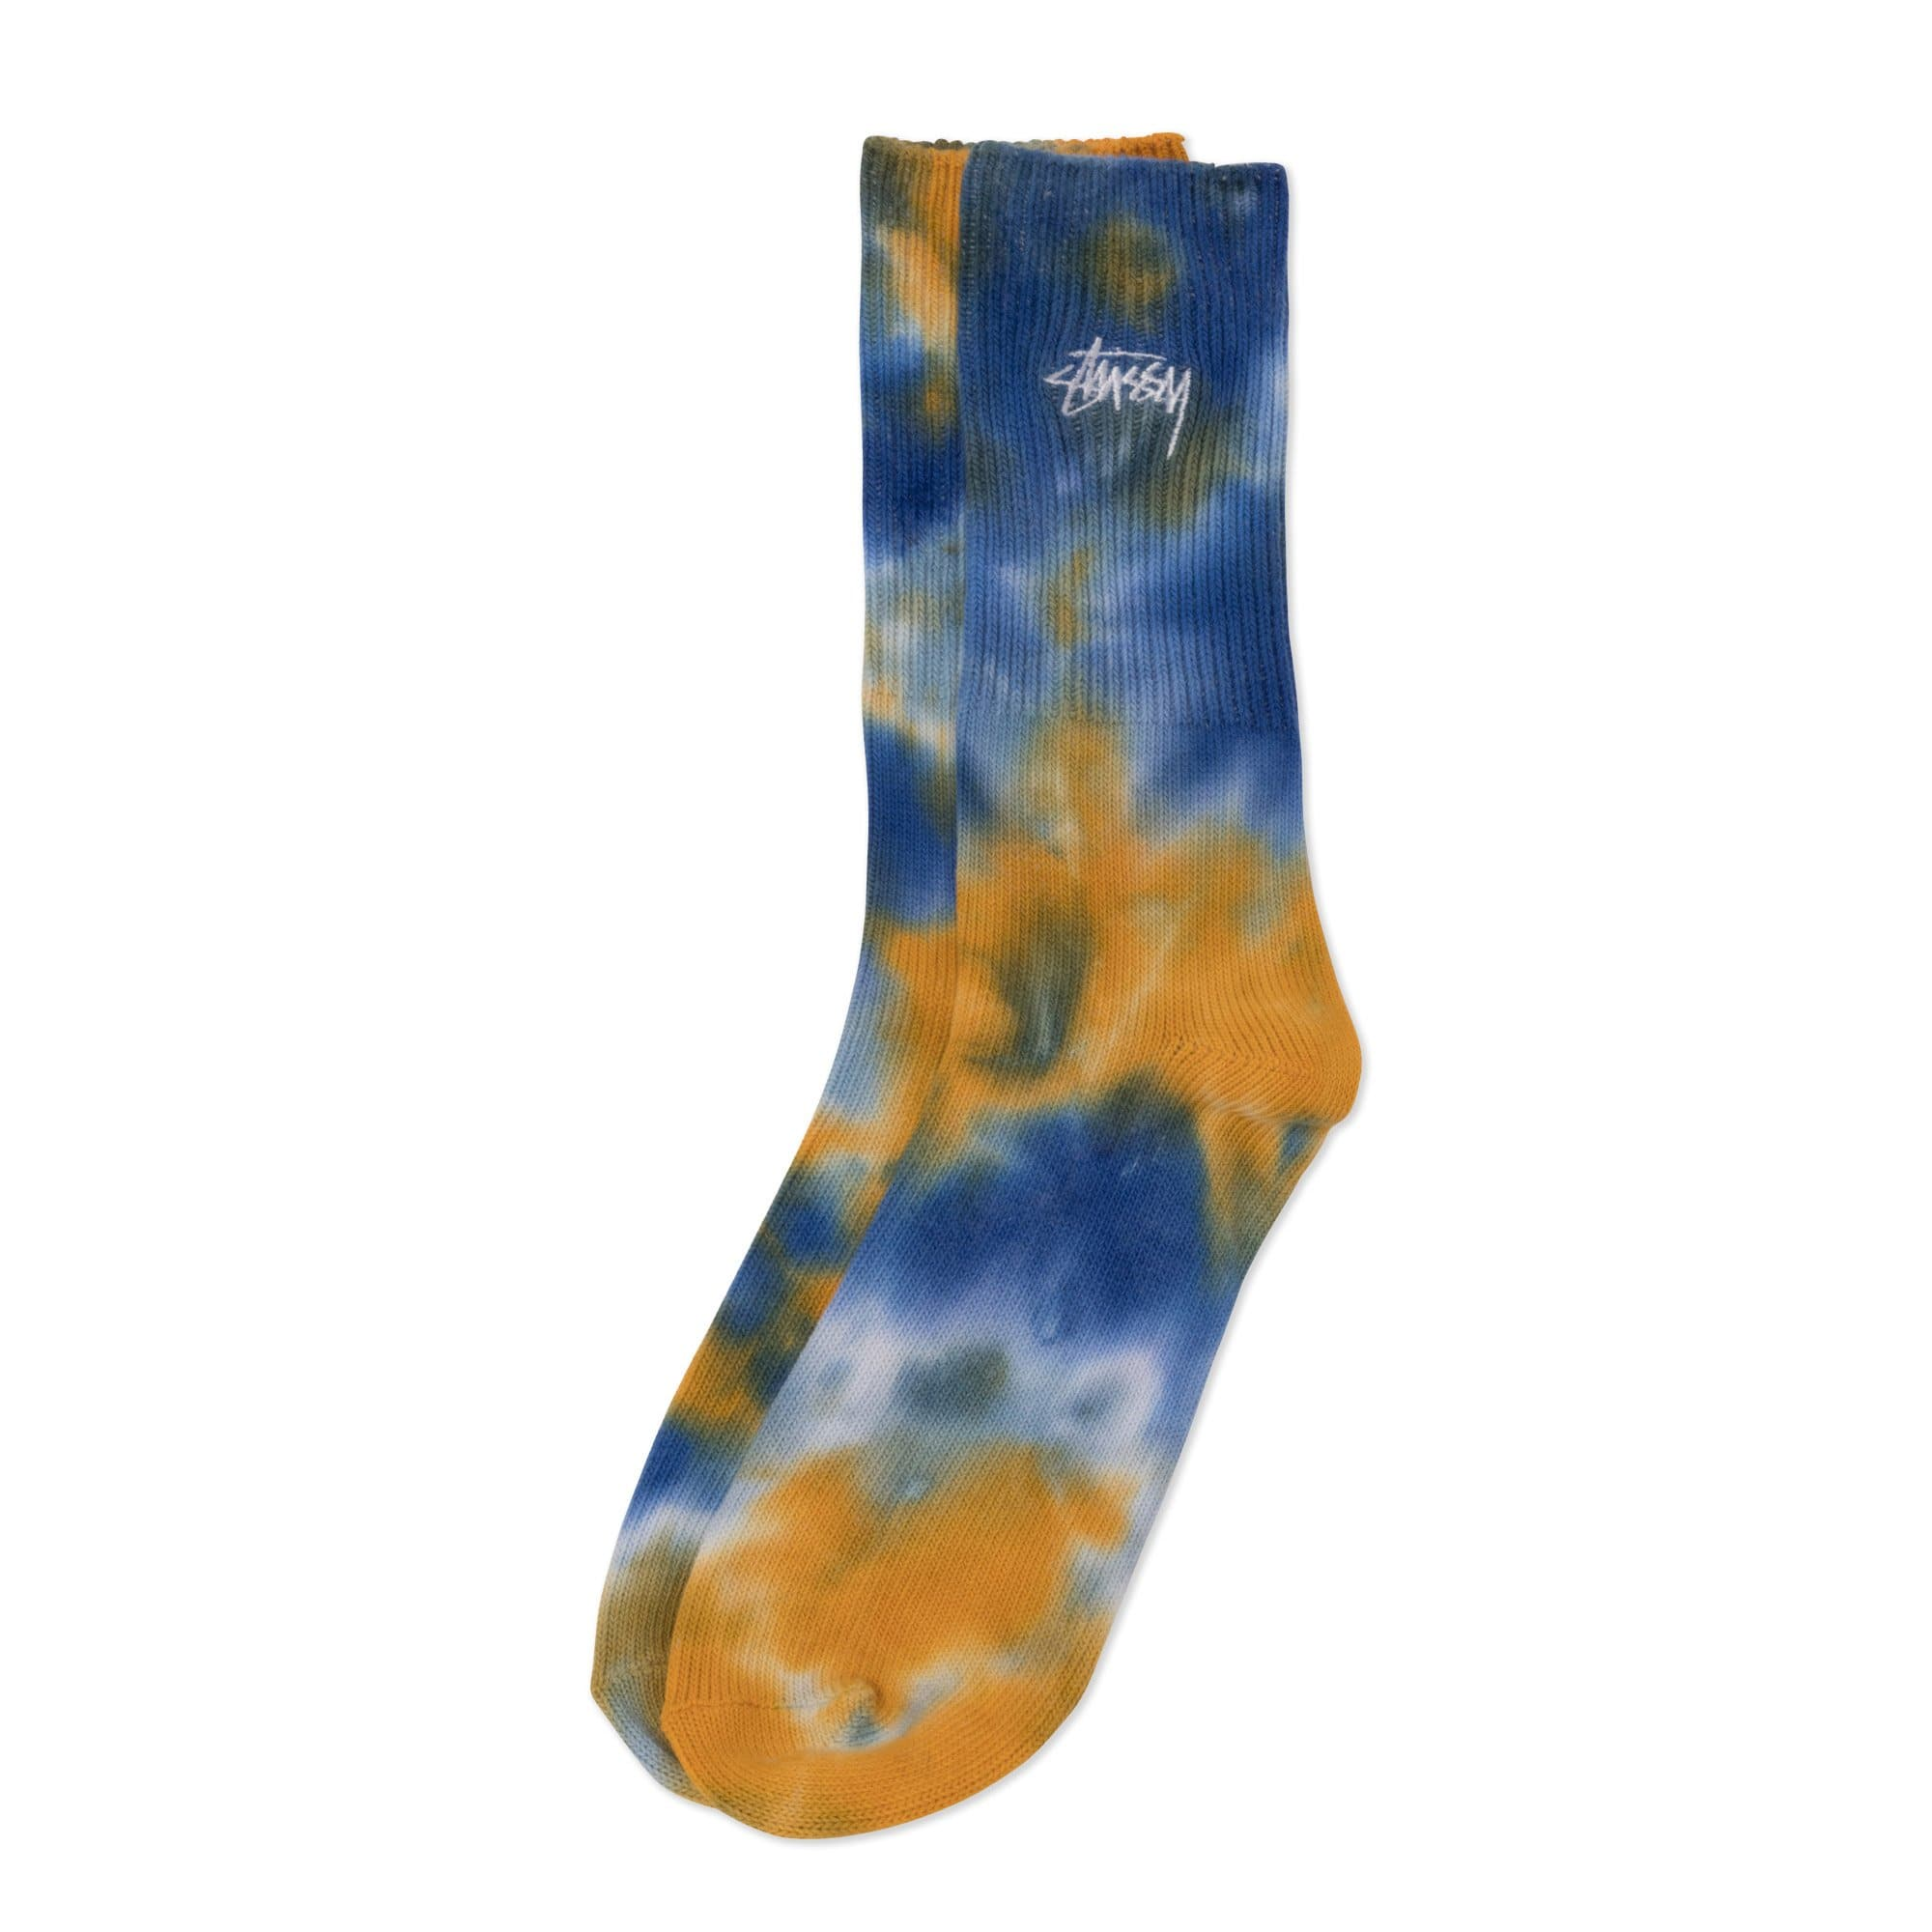 Stüssy Socken Orange Earth Dye Crew Socks